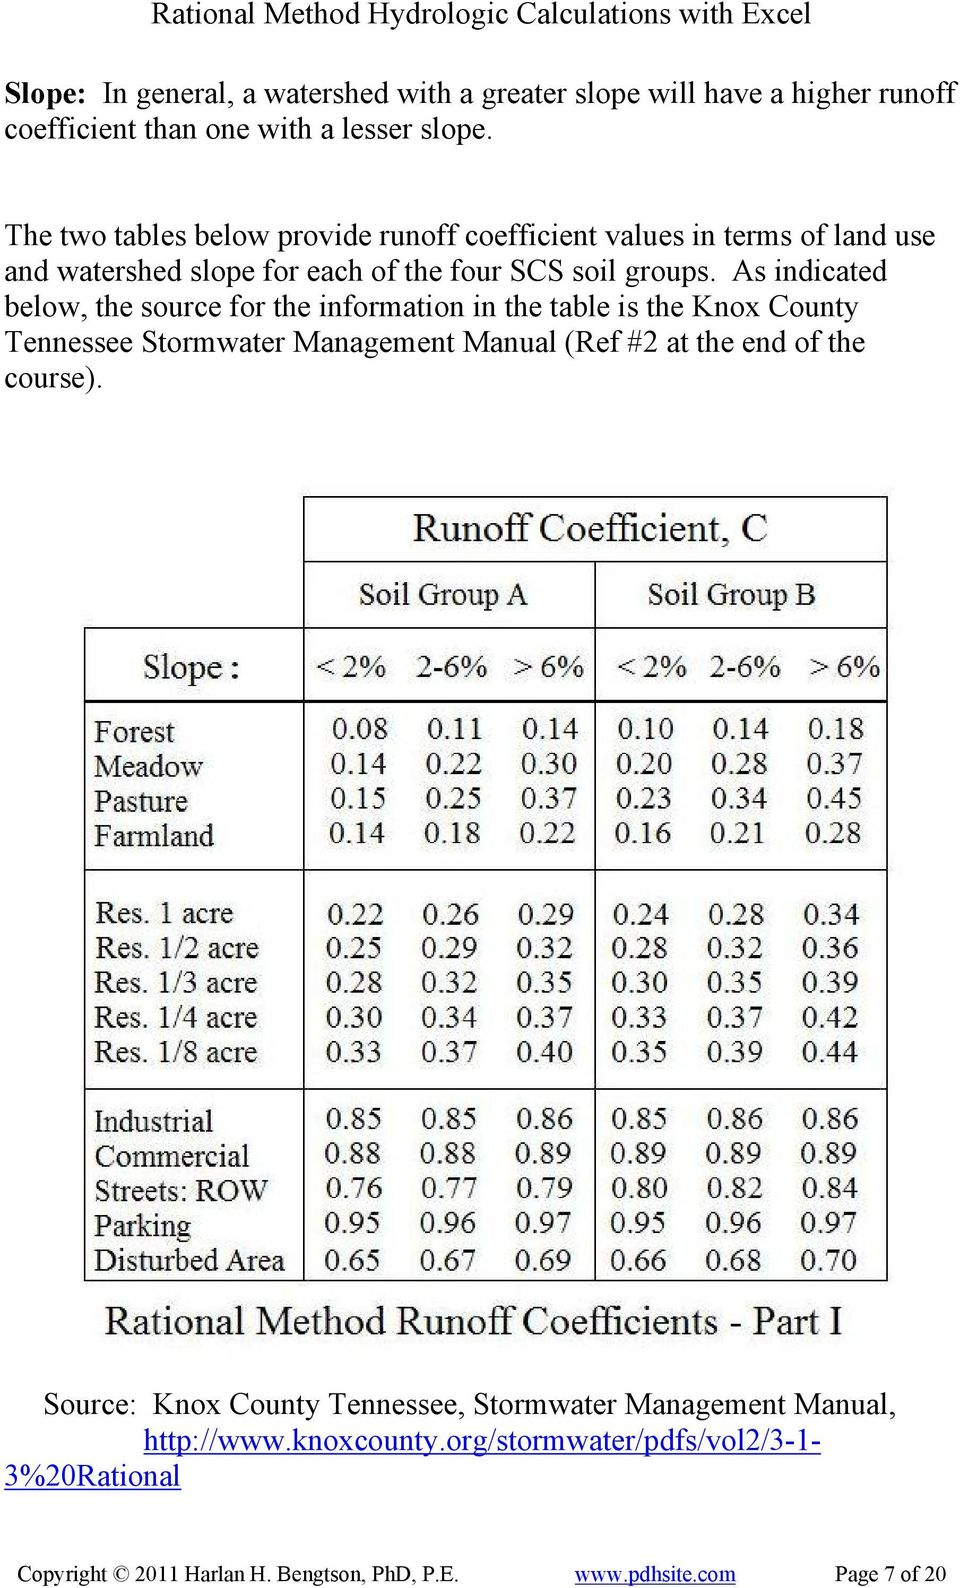 As indicated below, the source for the information in the table is the Knox County Tennessee Stormwater Management Manual (Ref #2 at the end of the